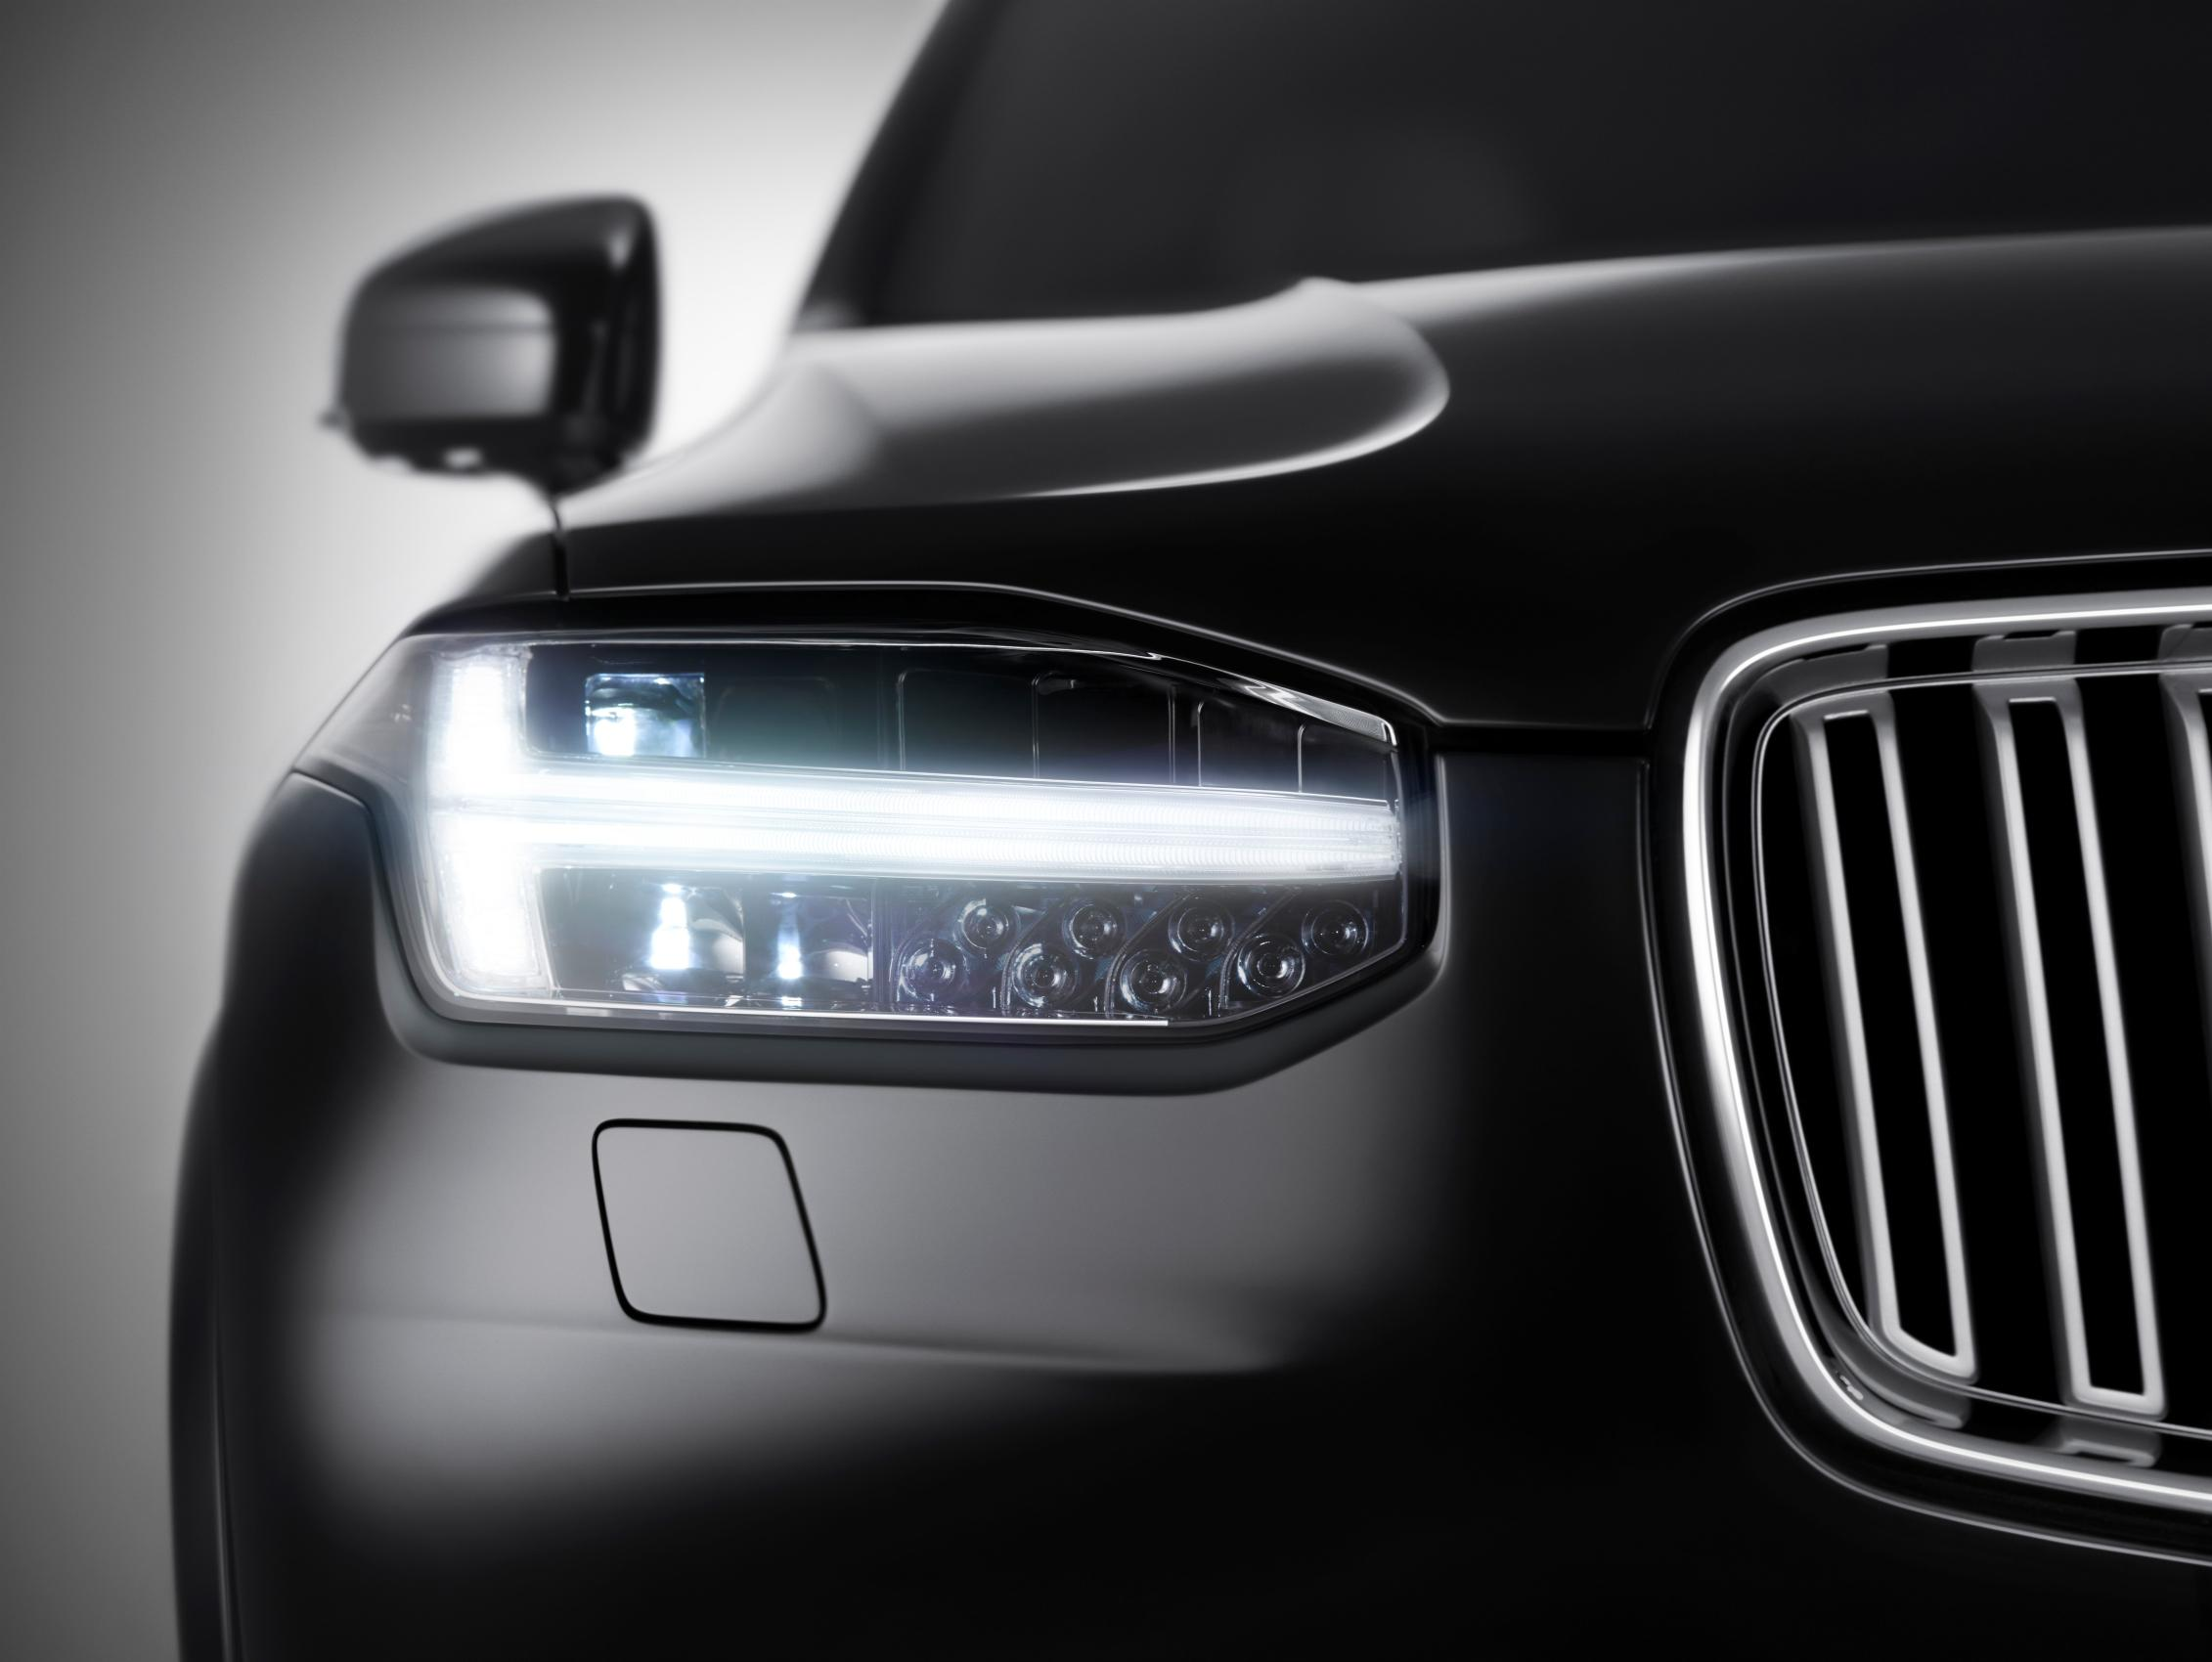 2015 volvo xc90 News, Videos, Reviews and Gossip - Jalopnik